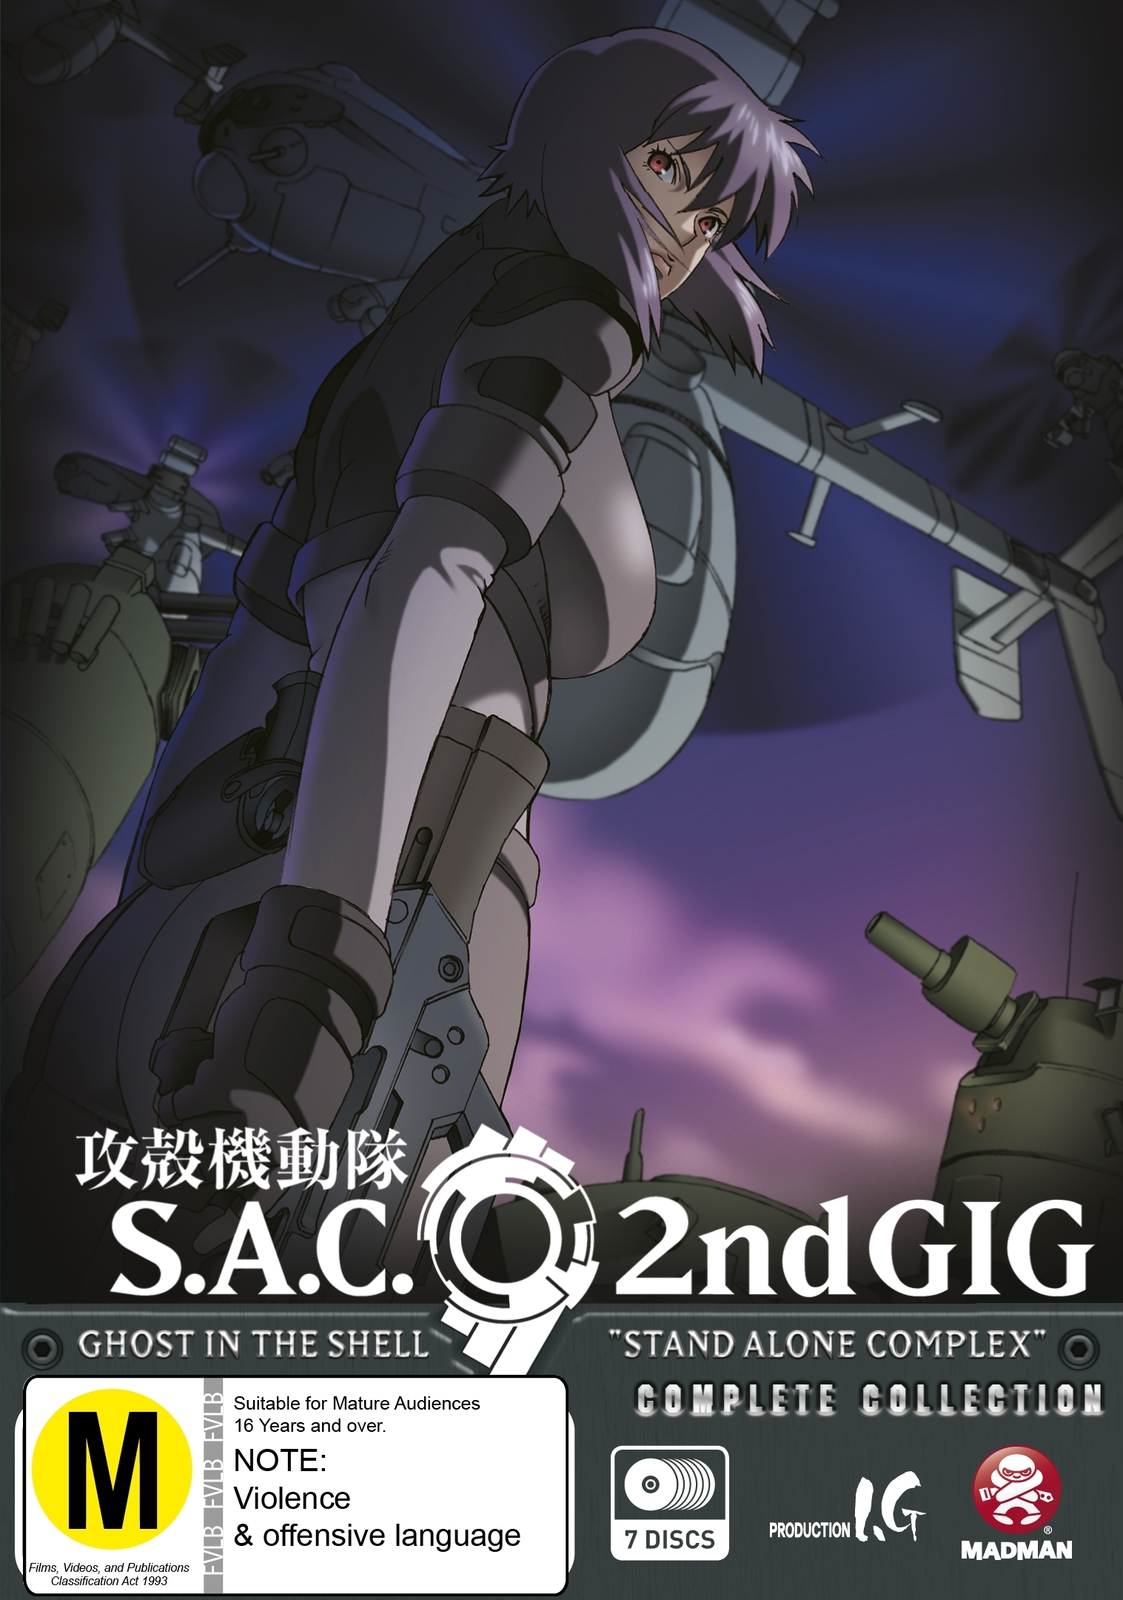 Ghost in the Shell S.A.C. - 2nd Gig Box Set on DVD image